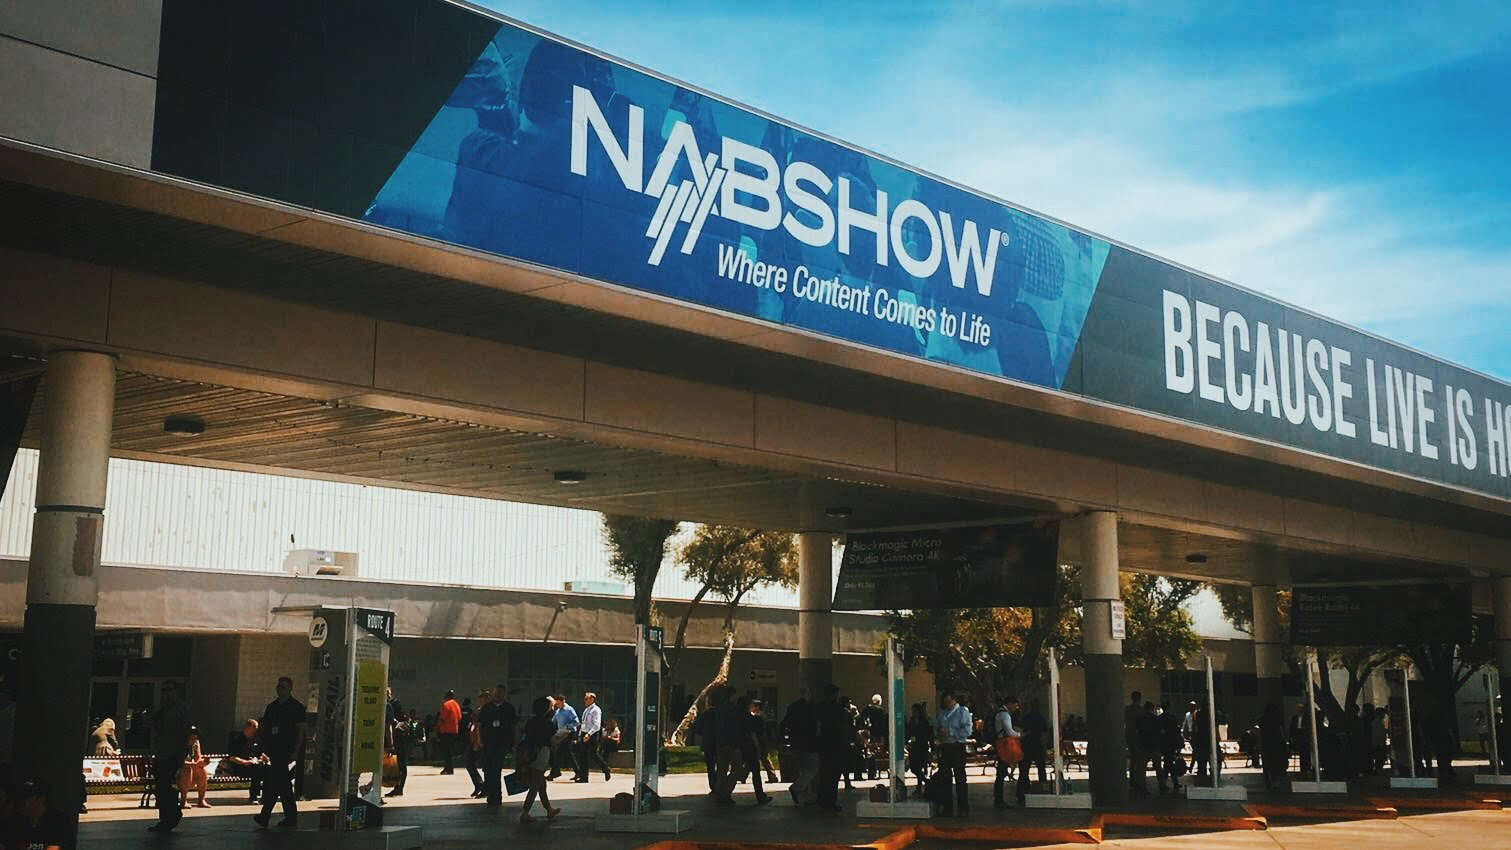 Updates from NAB Show 2018